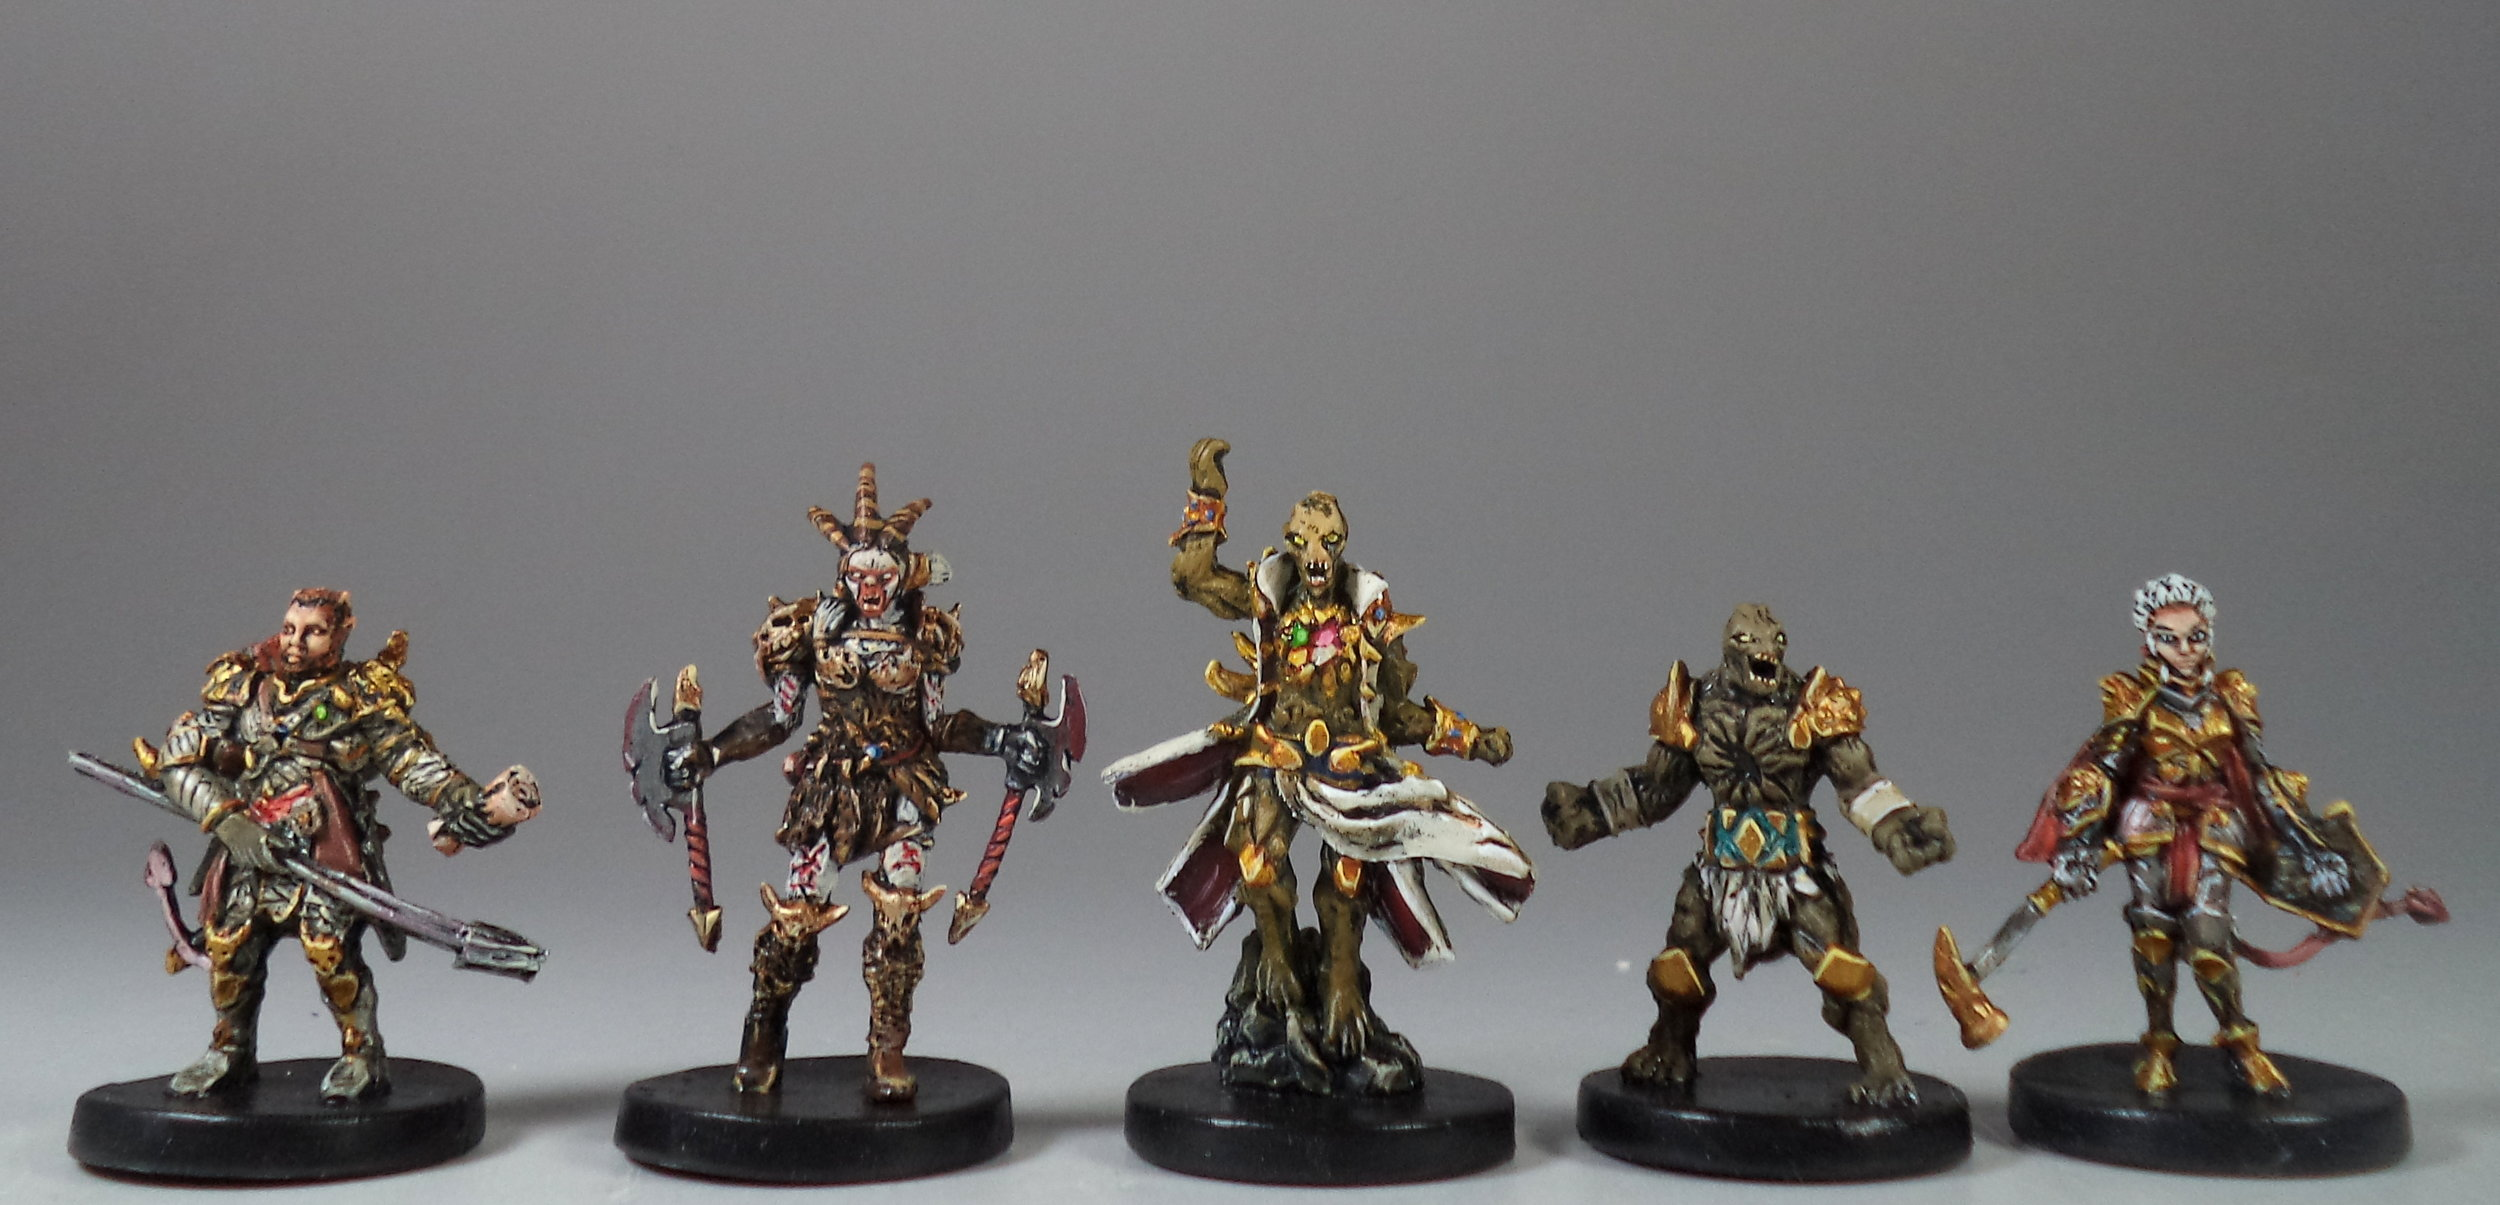 Gloomhaven Painted Gloomhaven Gloomhaven Miniature Painting (5).jpg